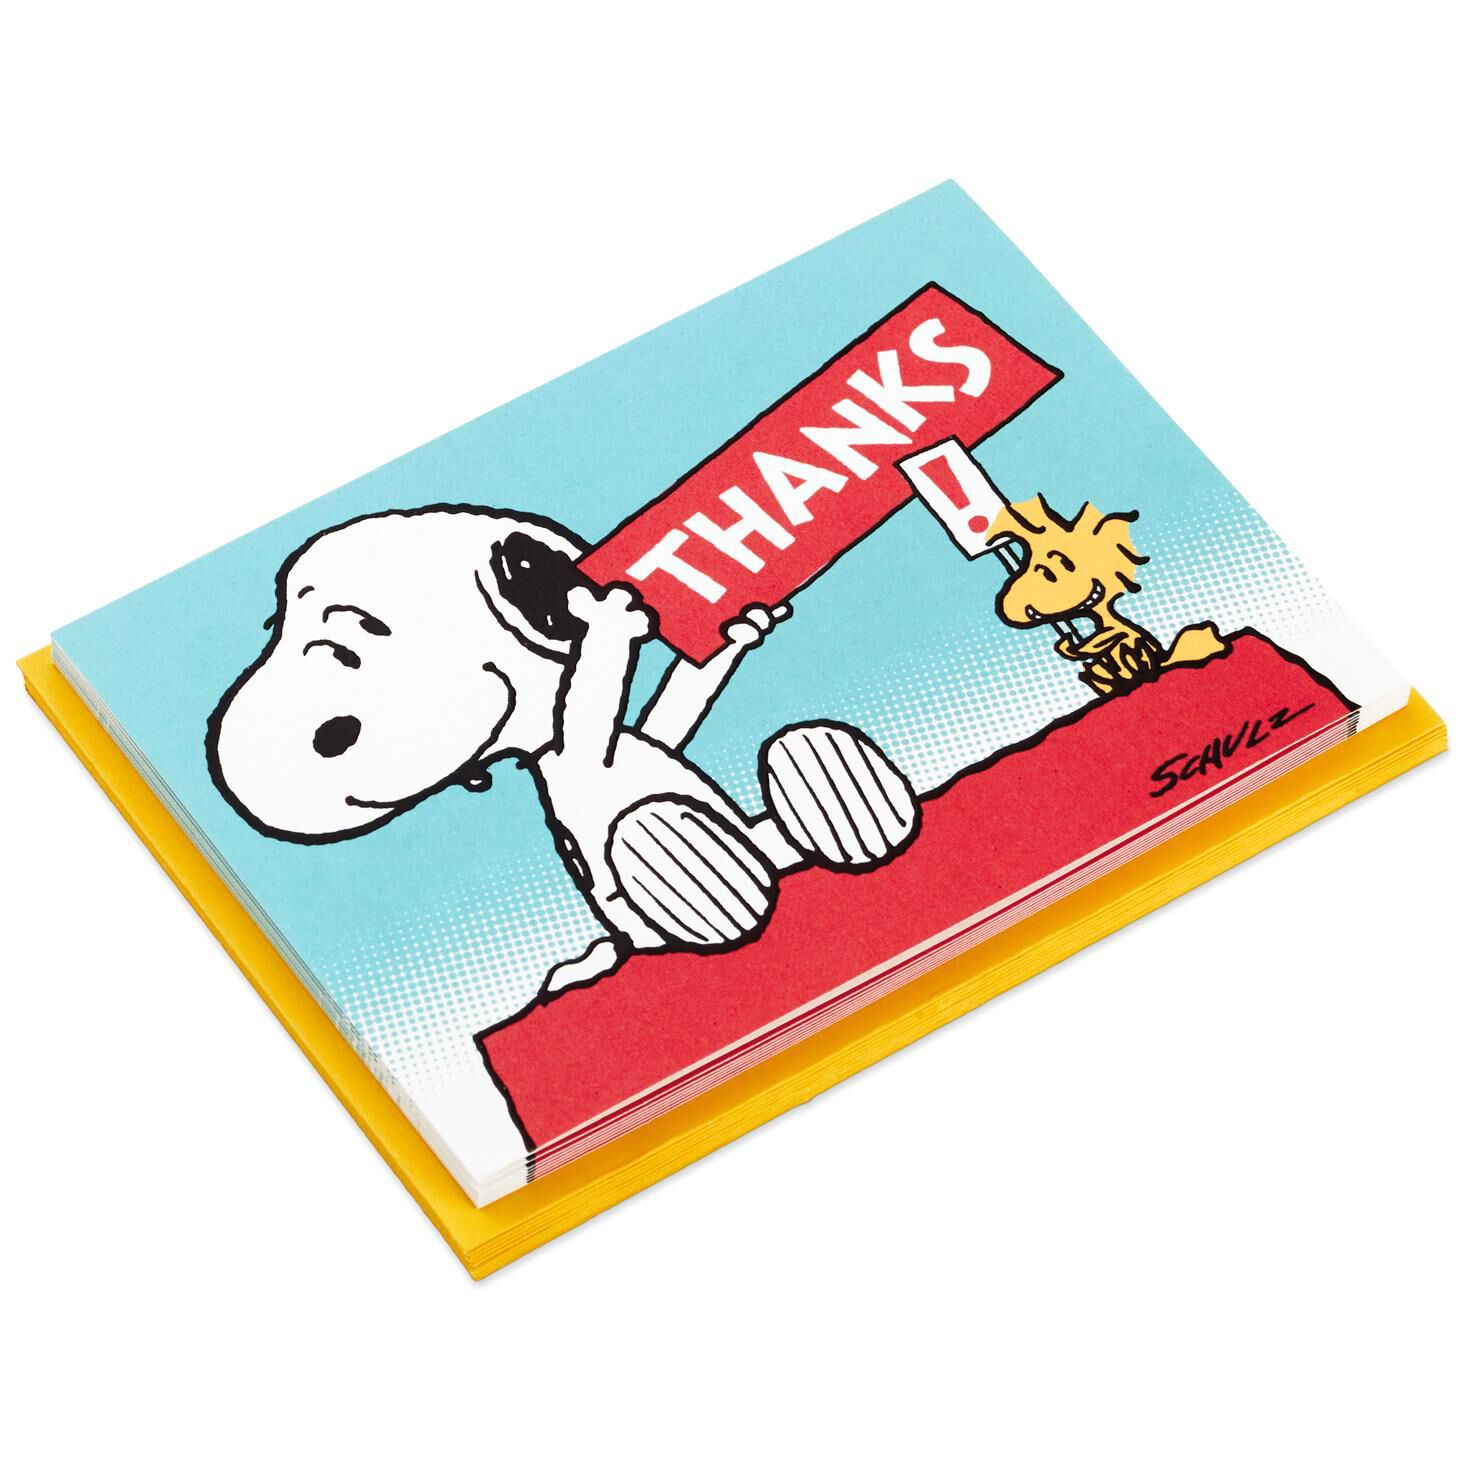 Peanuts Snoopy And Woodstock Blank Thank You Notes Pack Of 10